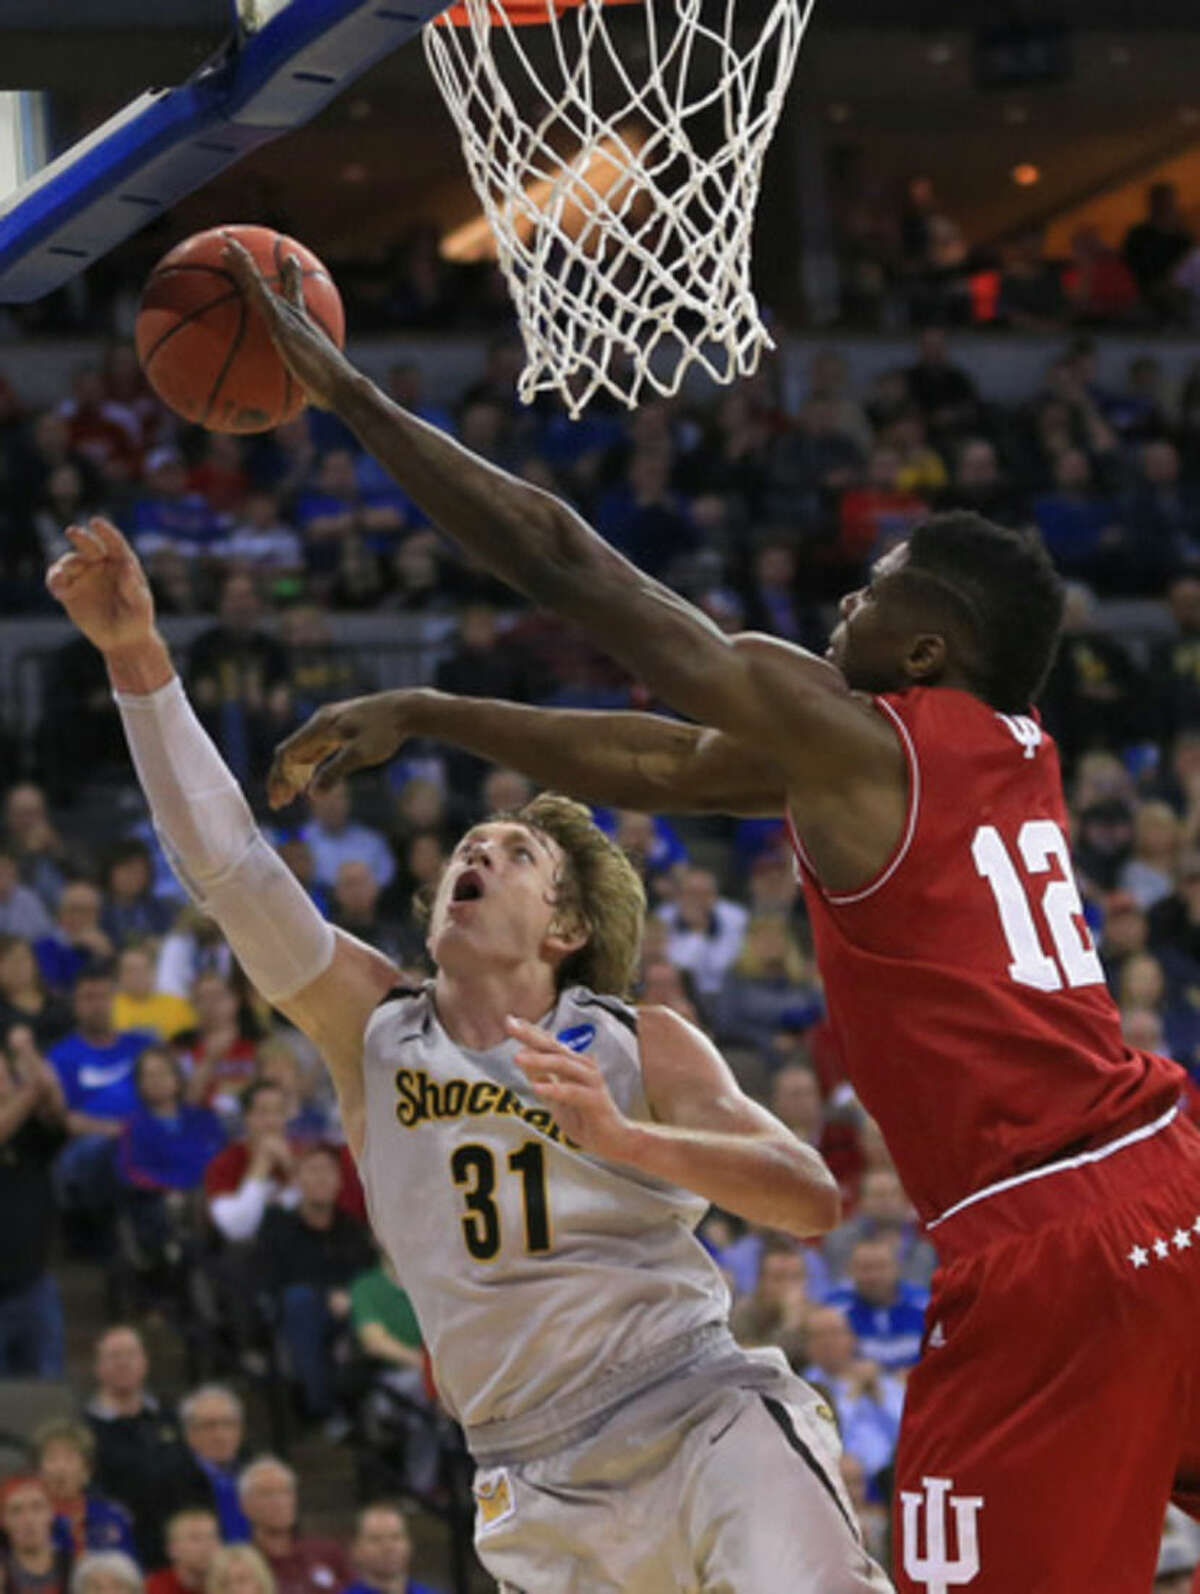 Indiana's Hanner Mosquera-Perea (12) fouls Wichita State's Ron Baker (31) during the first half of an NCAA tournament college basketball game in the Round of 64 in Omaha, Neb., Friday, March 20, 2015. (AP Photo/Nati Harnik)